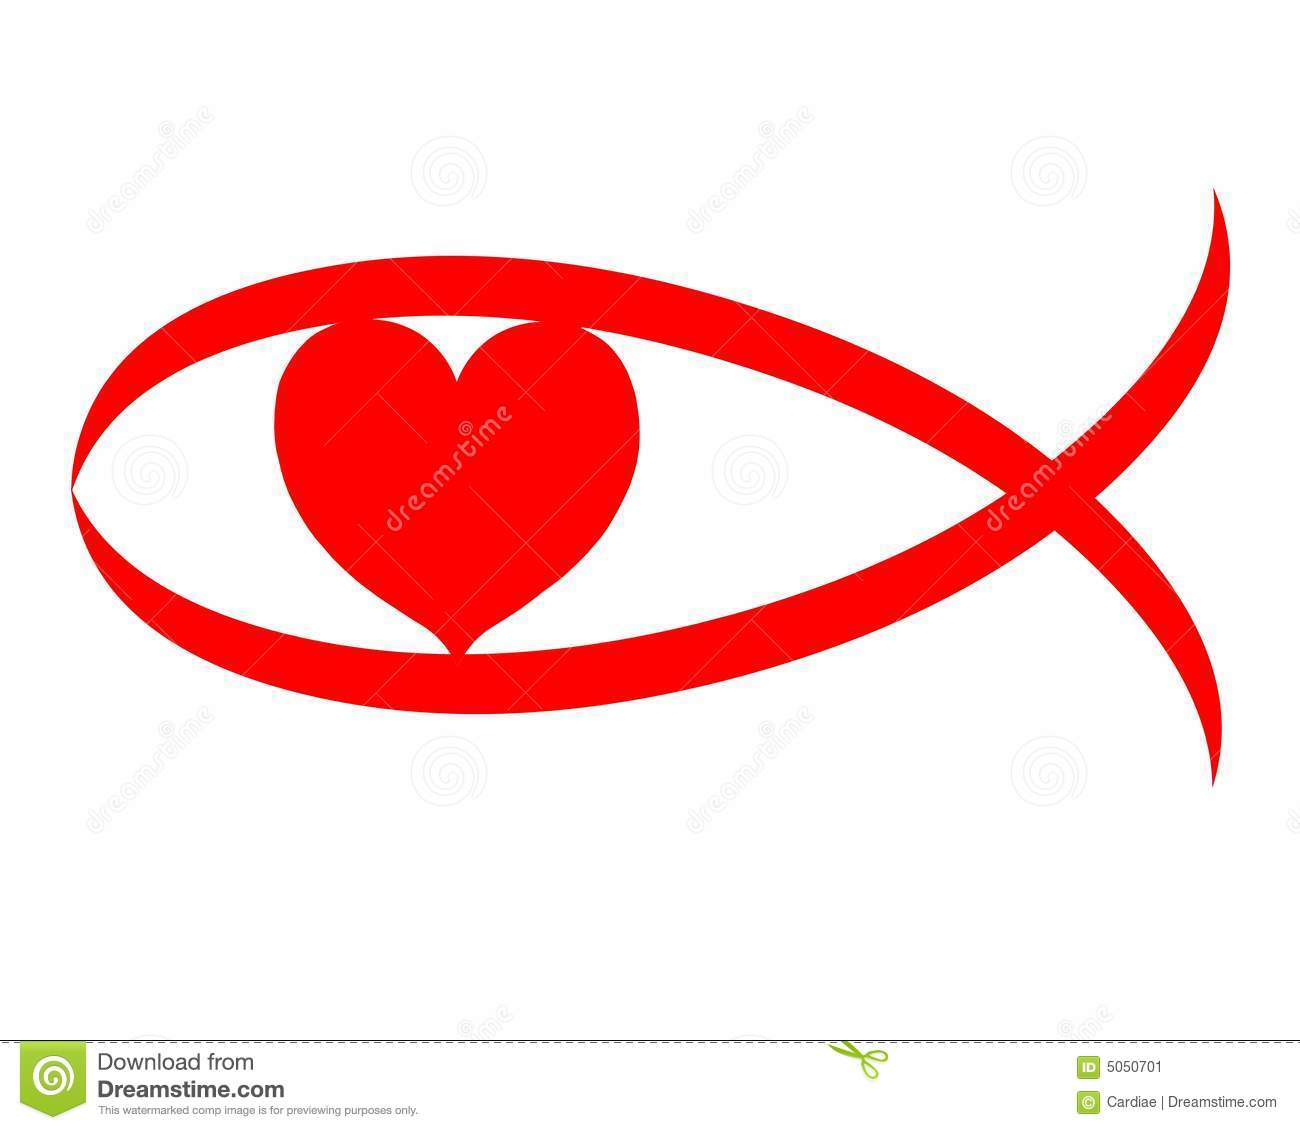 Christian love red heart sign symbol on white background - isolated.